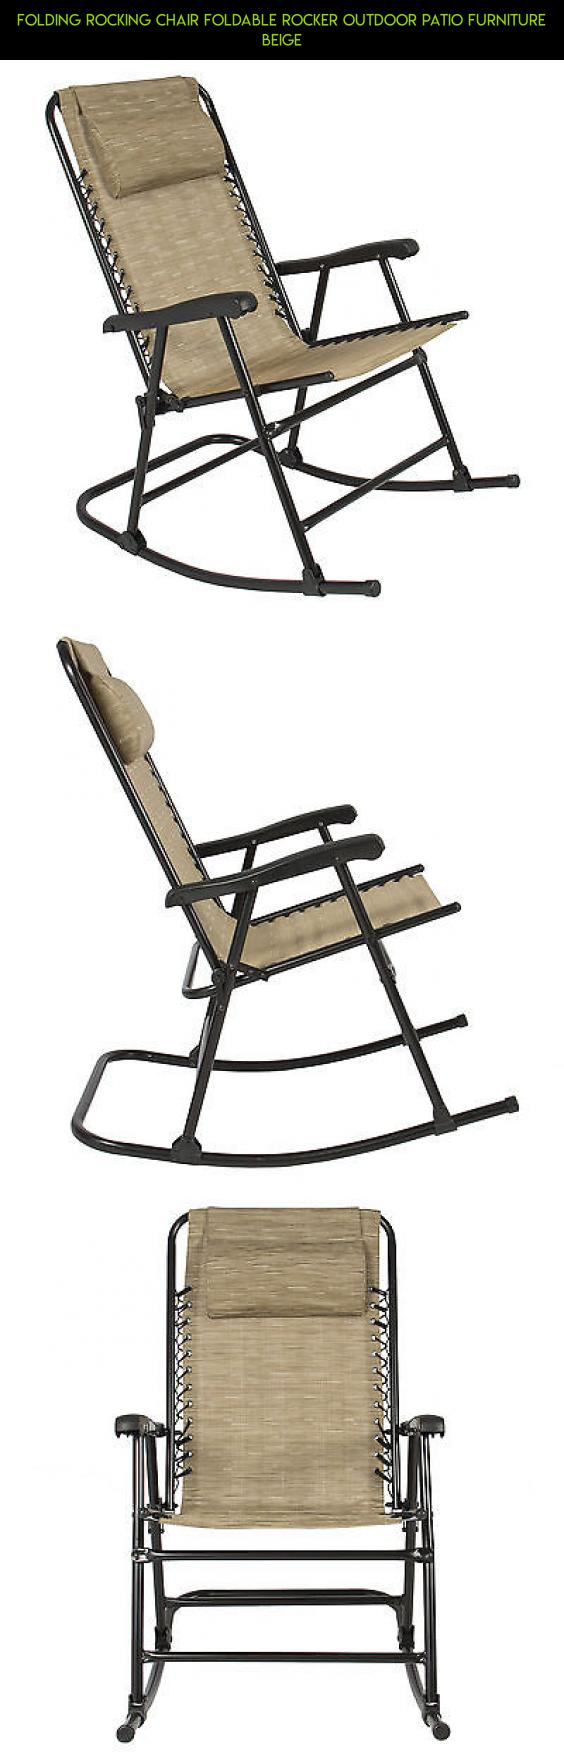 Outdoor folding chair parts - Folding Rocking Chair Foldable Rocker Outdoor Patio Furniture Beige Chair Parts Technology